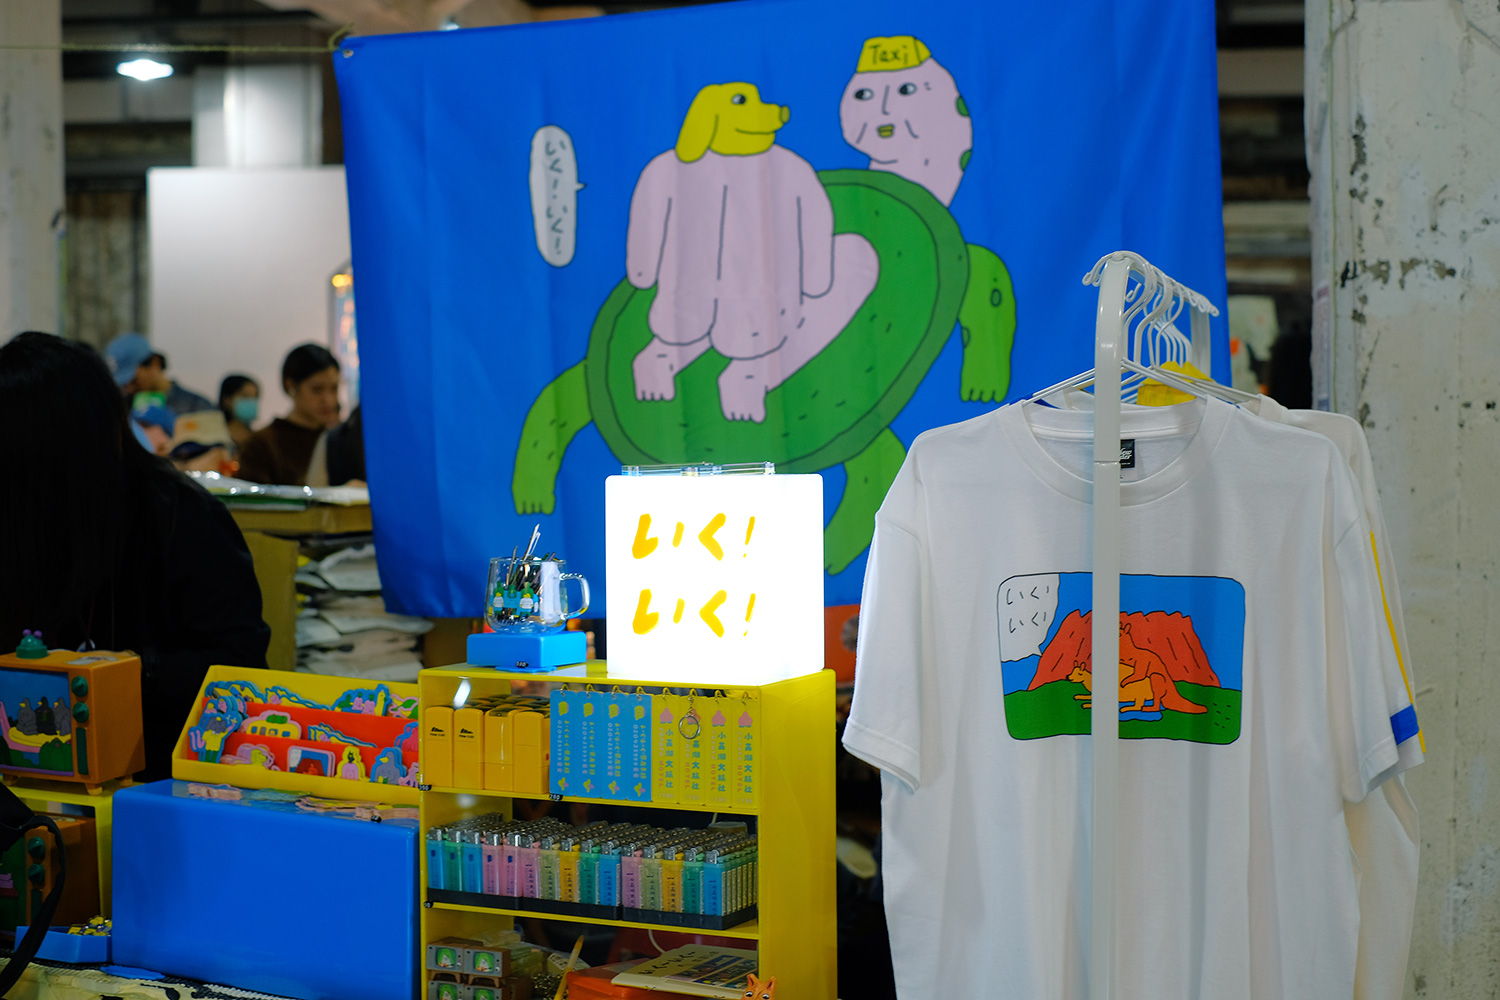 taipei-art-book-fair-2020-11